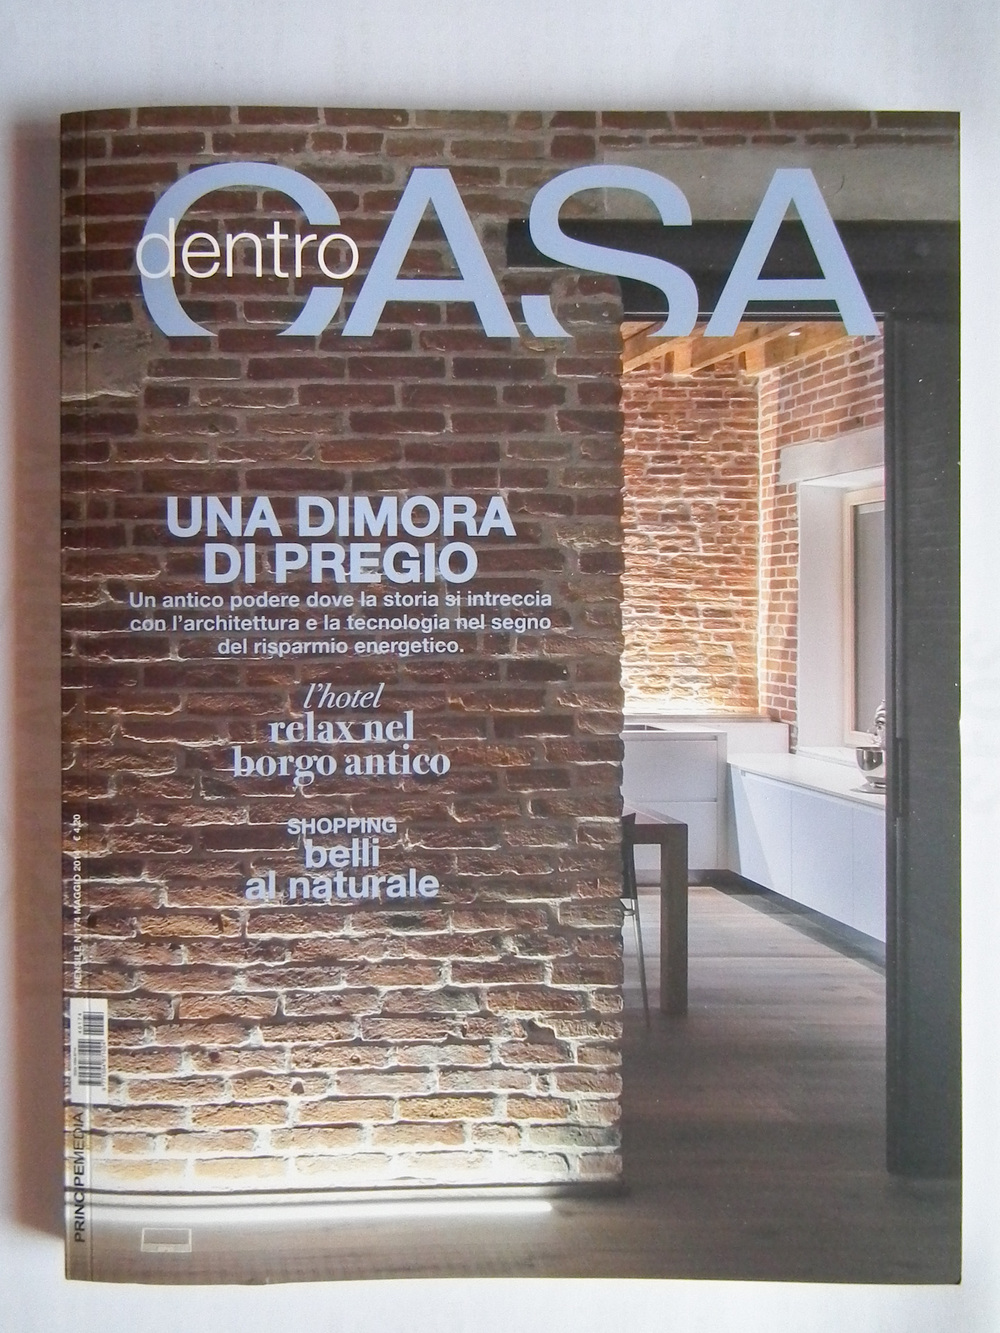 dentroCASA - May 2014